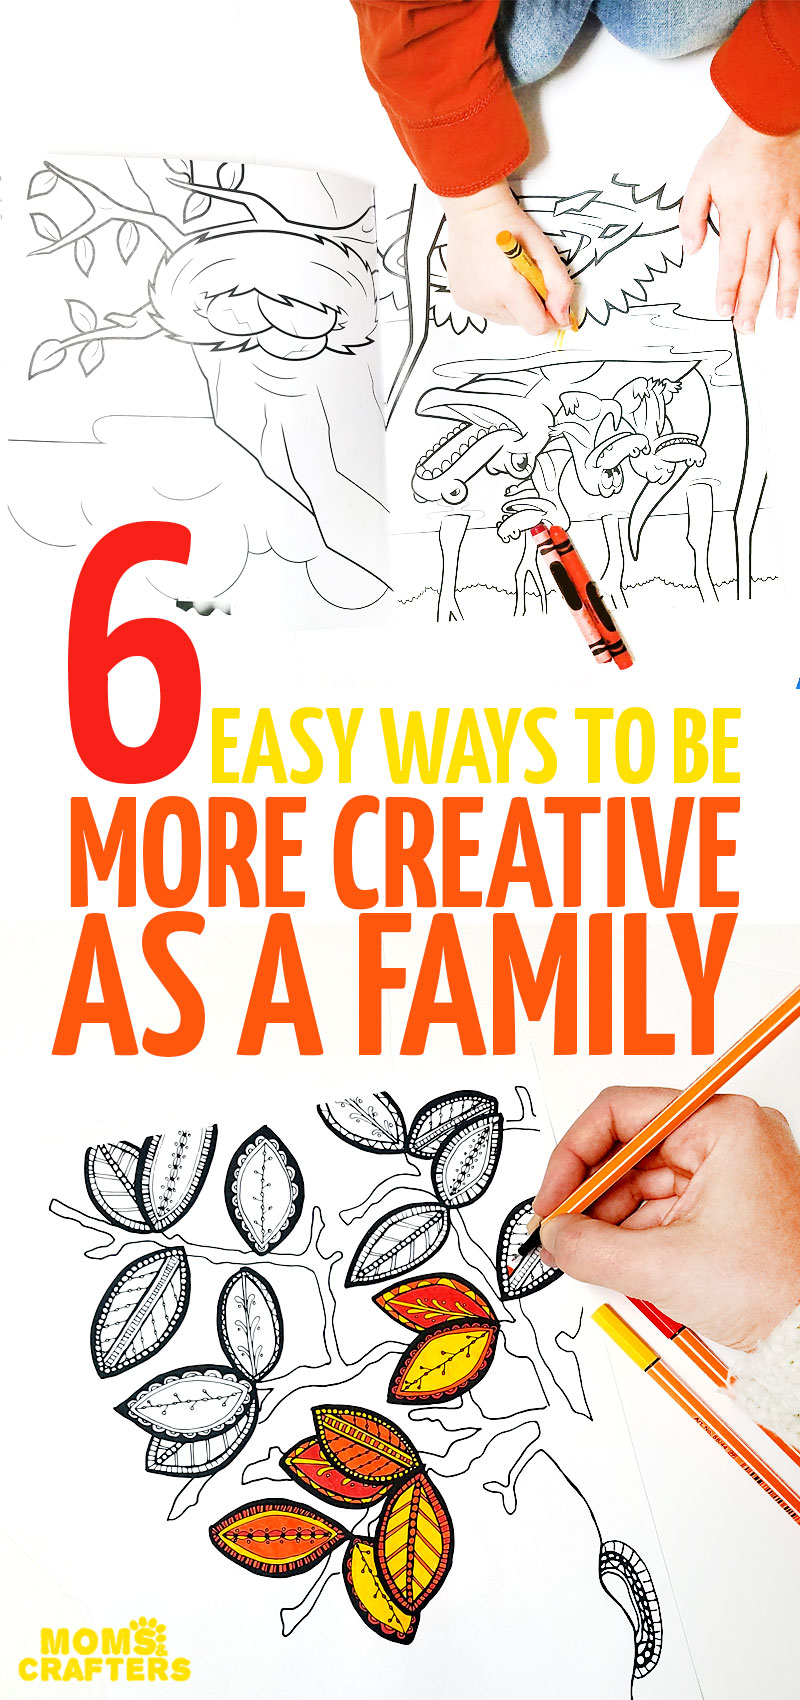 We love to be creative as a family but it can be challenging with young kids... Here are some ways to foster creativity, and spend quality time while using imagination and creating! You'll love these fun family activities and fun ideas~!